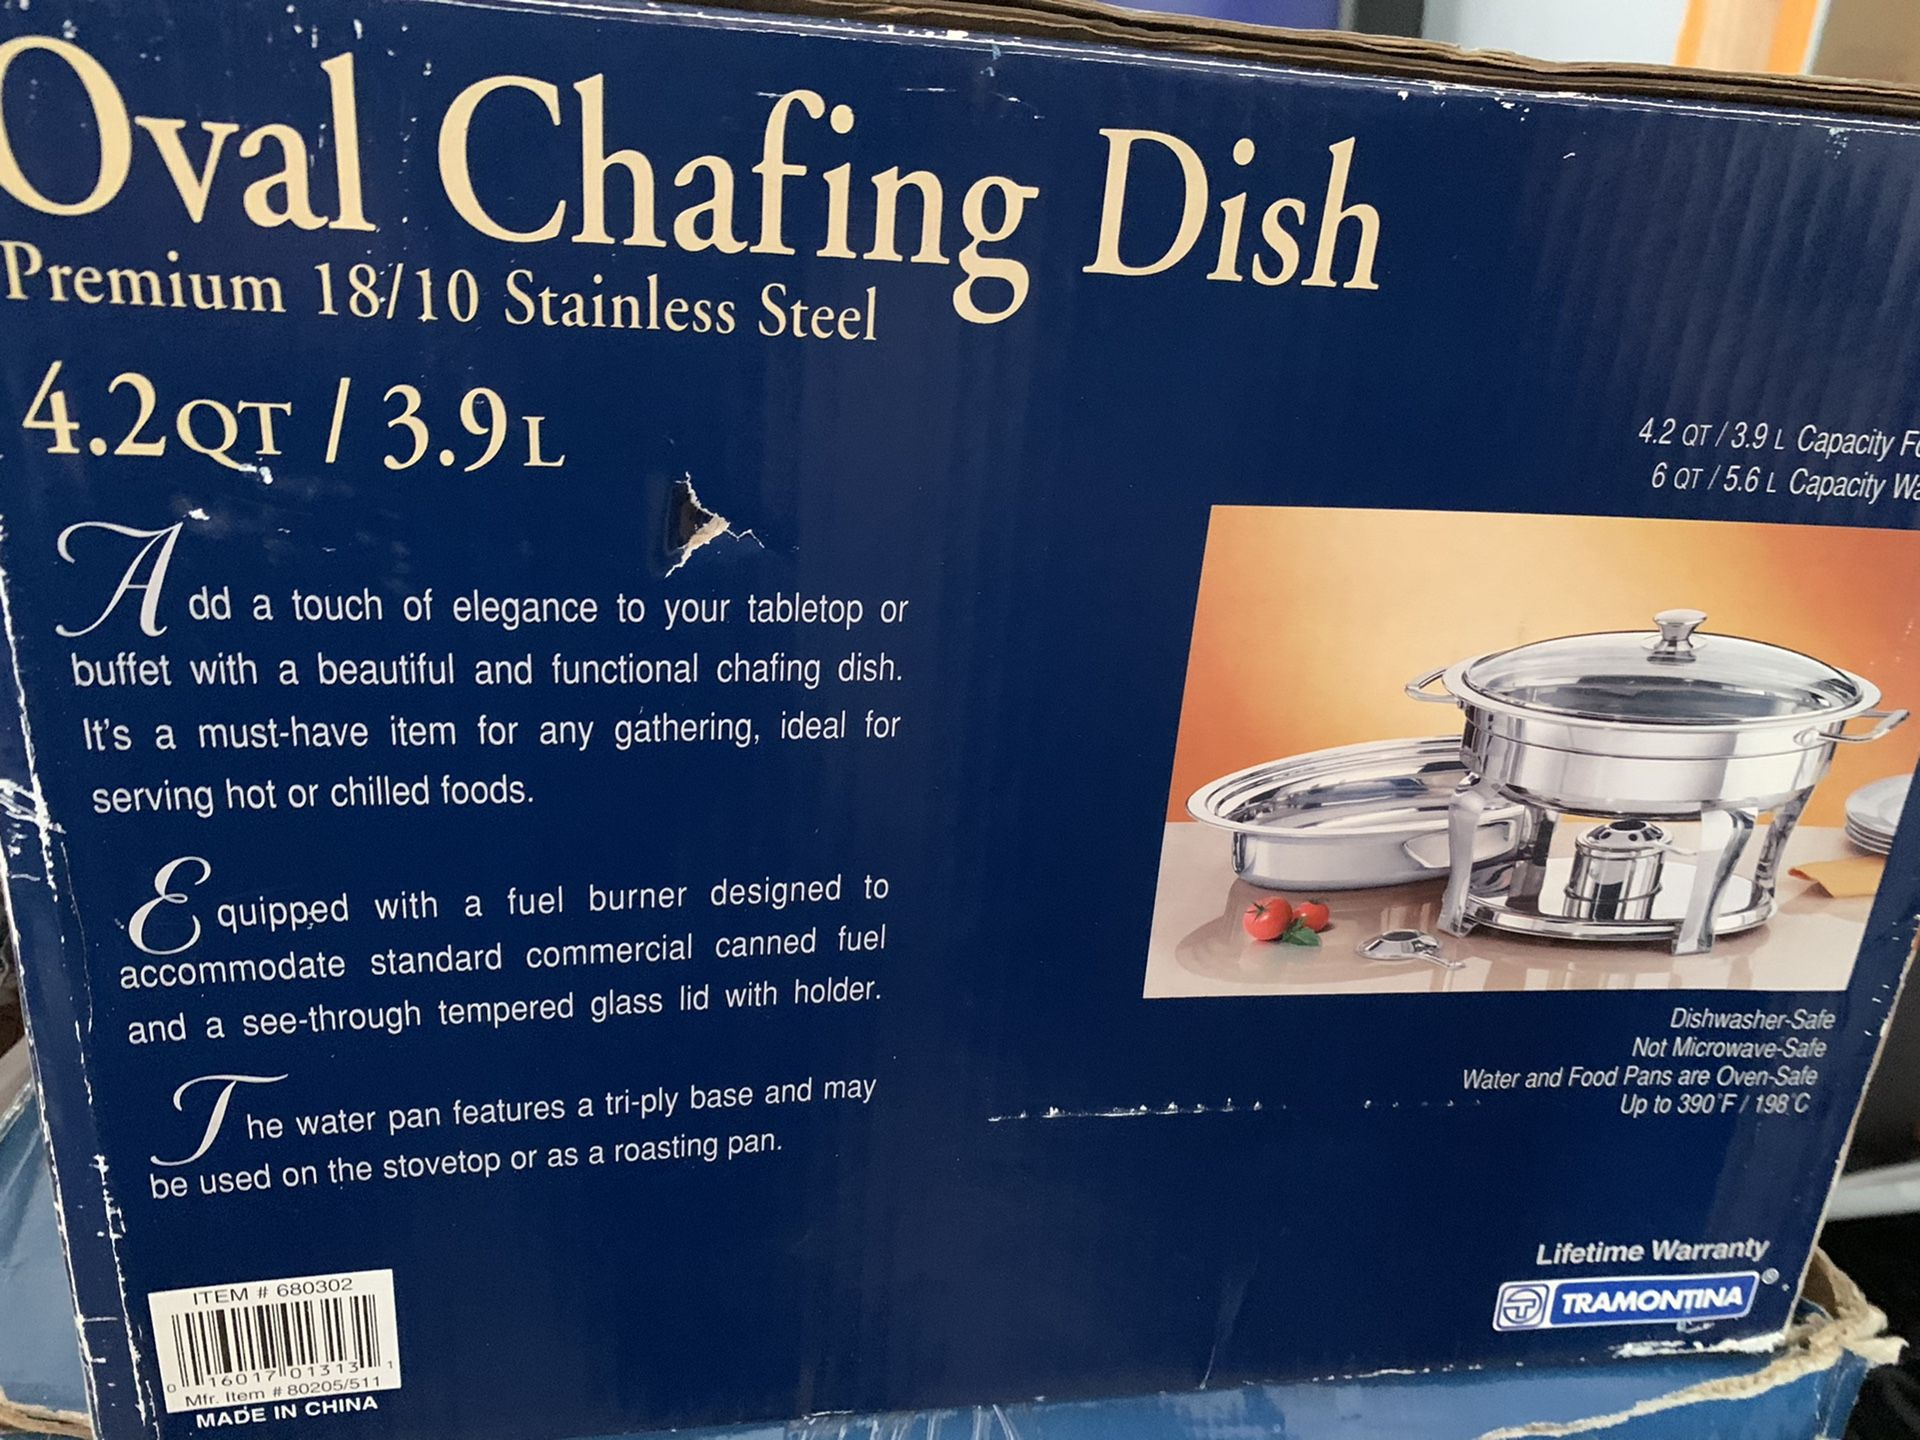 CHAFING DISH OVAL-TRAMONTINA #680302 PREMIUM 18/10 STAINLESS STEEL 4.2 QT/ 3.9L